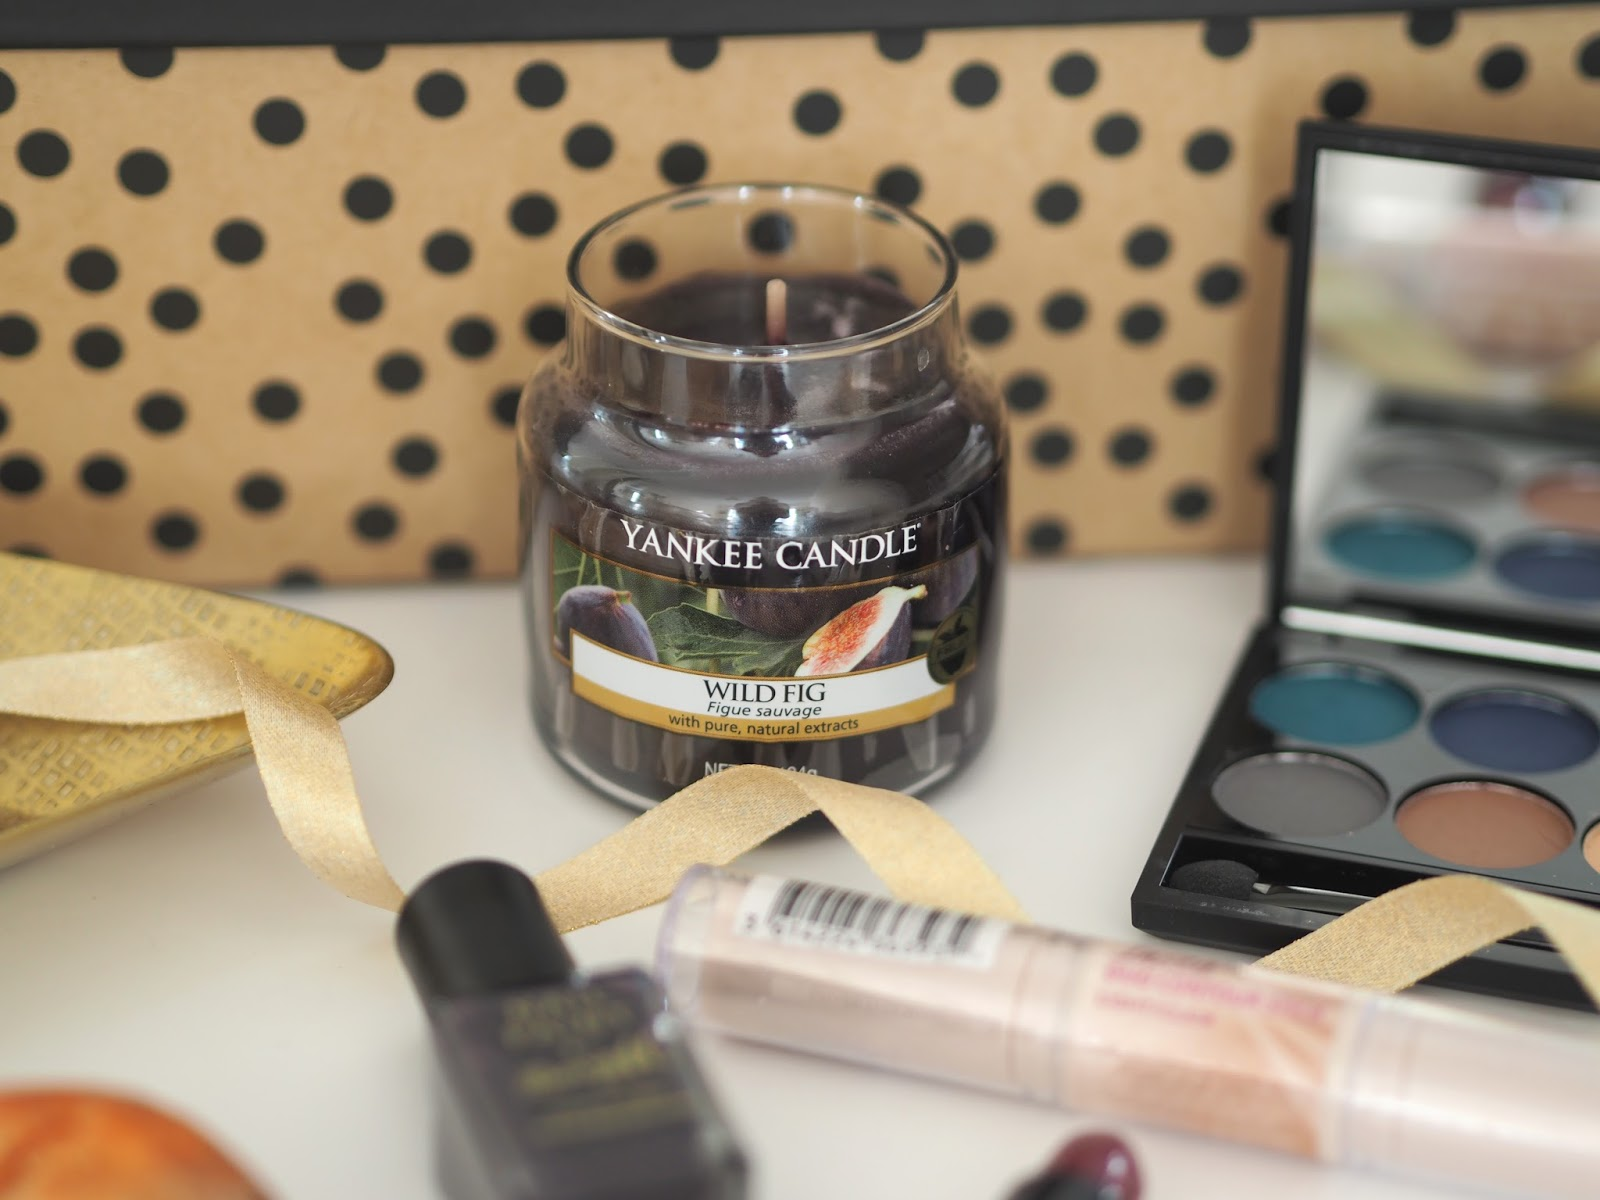 Autumn Giveaway, Katie Kirk Loves, UK Blogger, Fashion Blogger, Beauty Blogger, Giveaway, Prize, Competition, Win This, Lush Cosmetics, Lush Sparkly Pumpkin, Blog Giveaway, Make Up Revolution, Sleek Make Up, Barry M, Yankee Candle